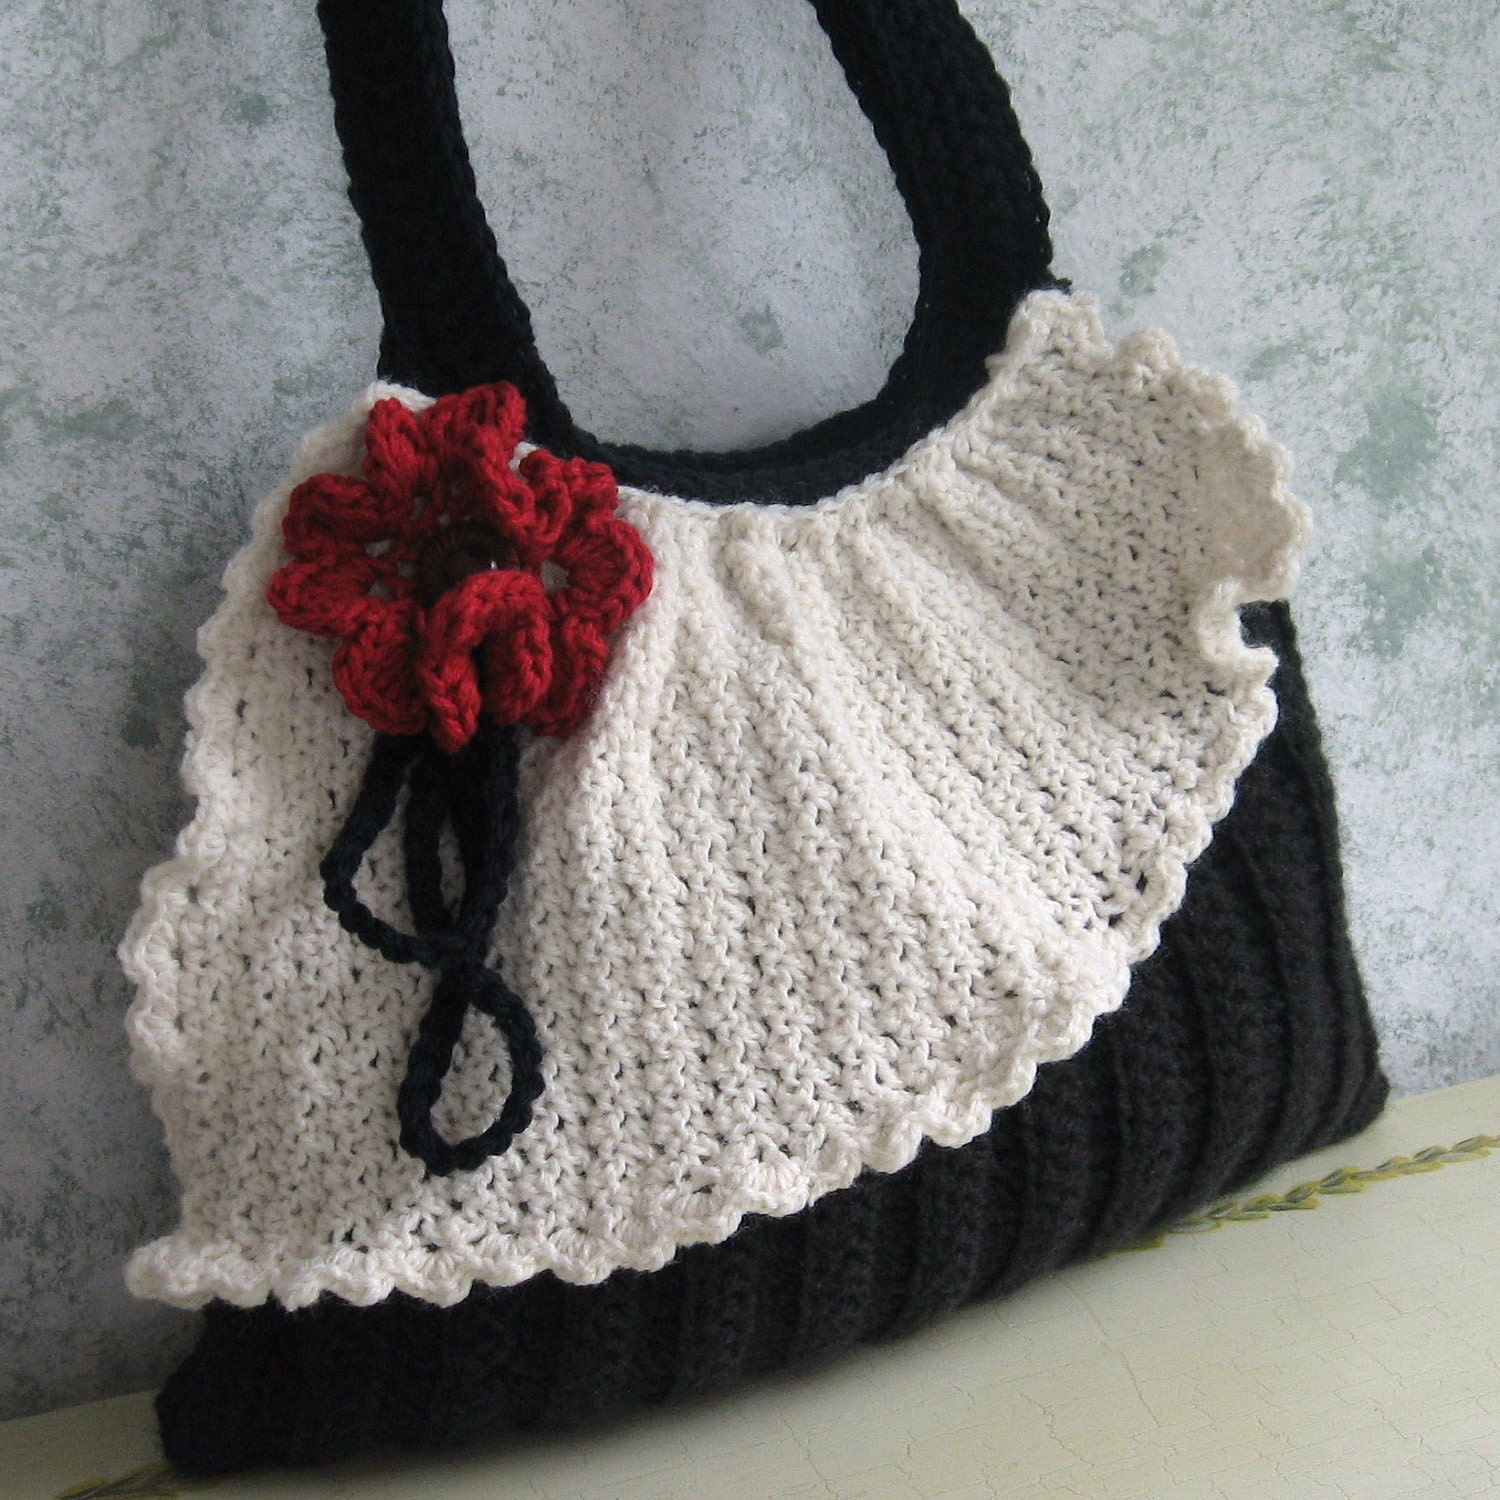 Crochet Purses And Bags Tutorials : Crochet Purse Pattern Pleated Bag With Drape And by kalliedesigns